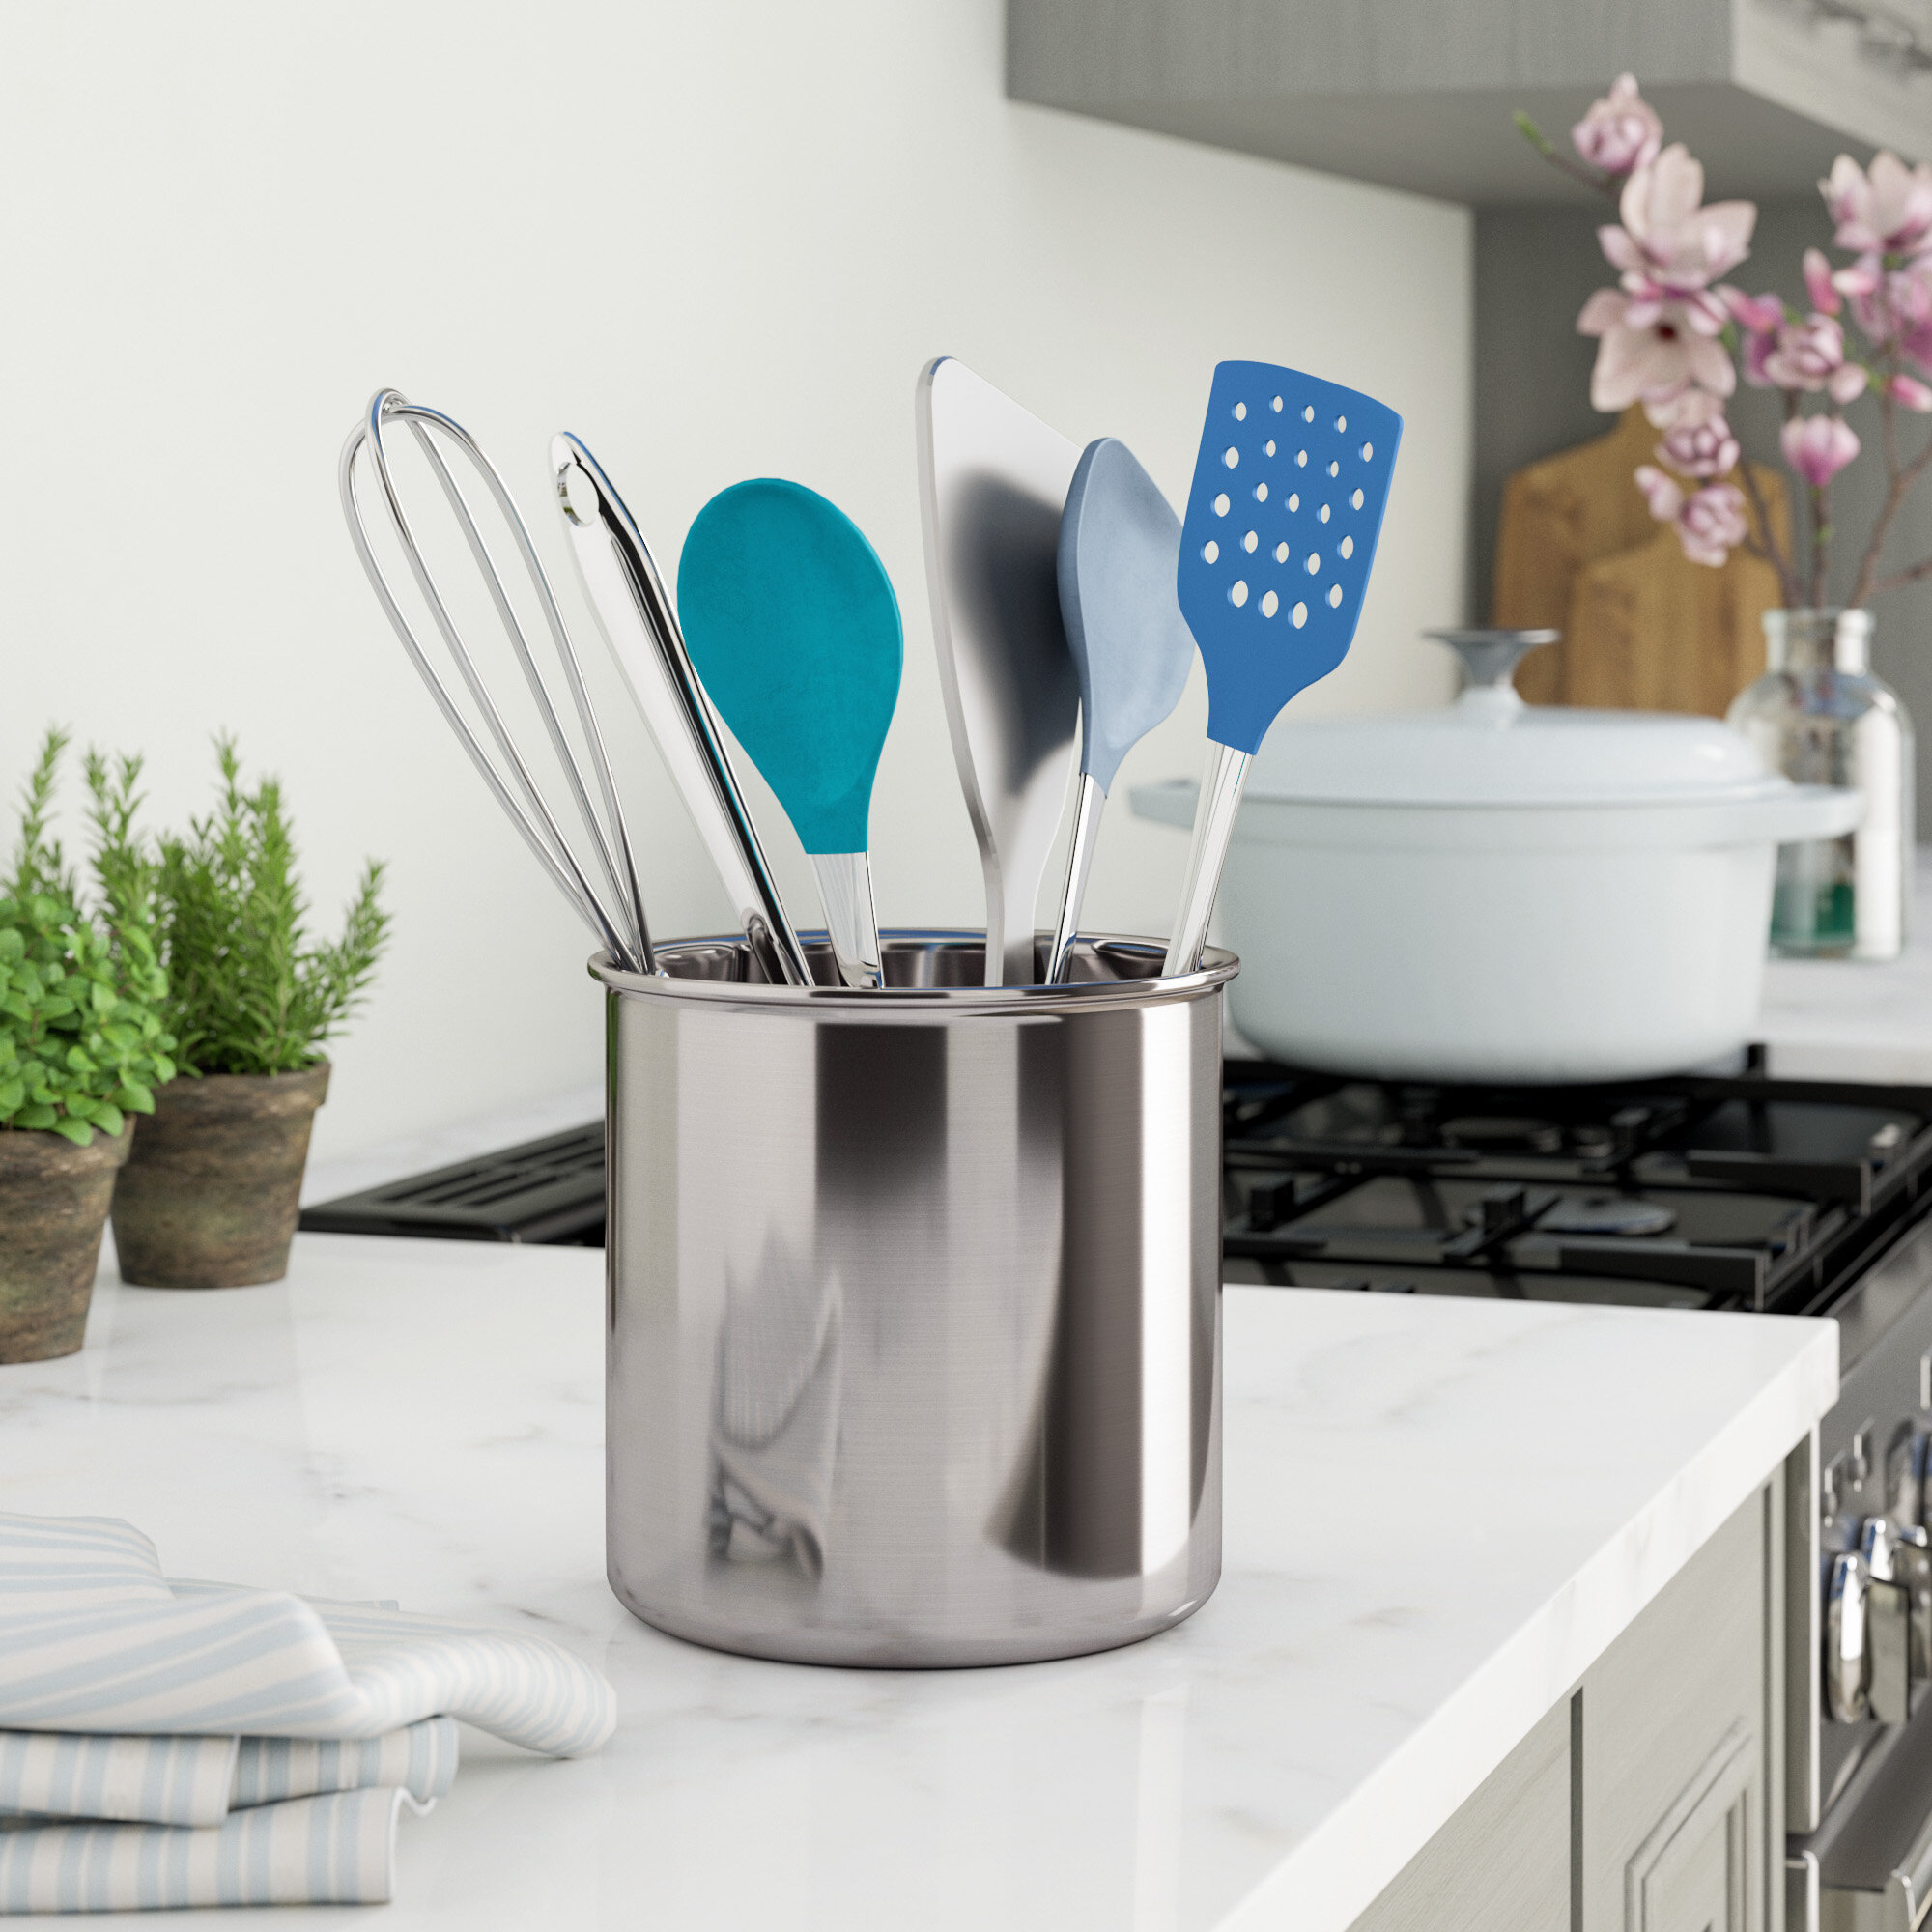 Rebrilliant Jumbo Stainless Steel Utensil Holder & Reviews | Wayfair